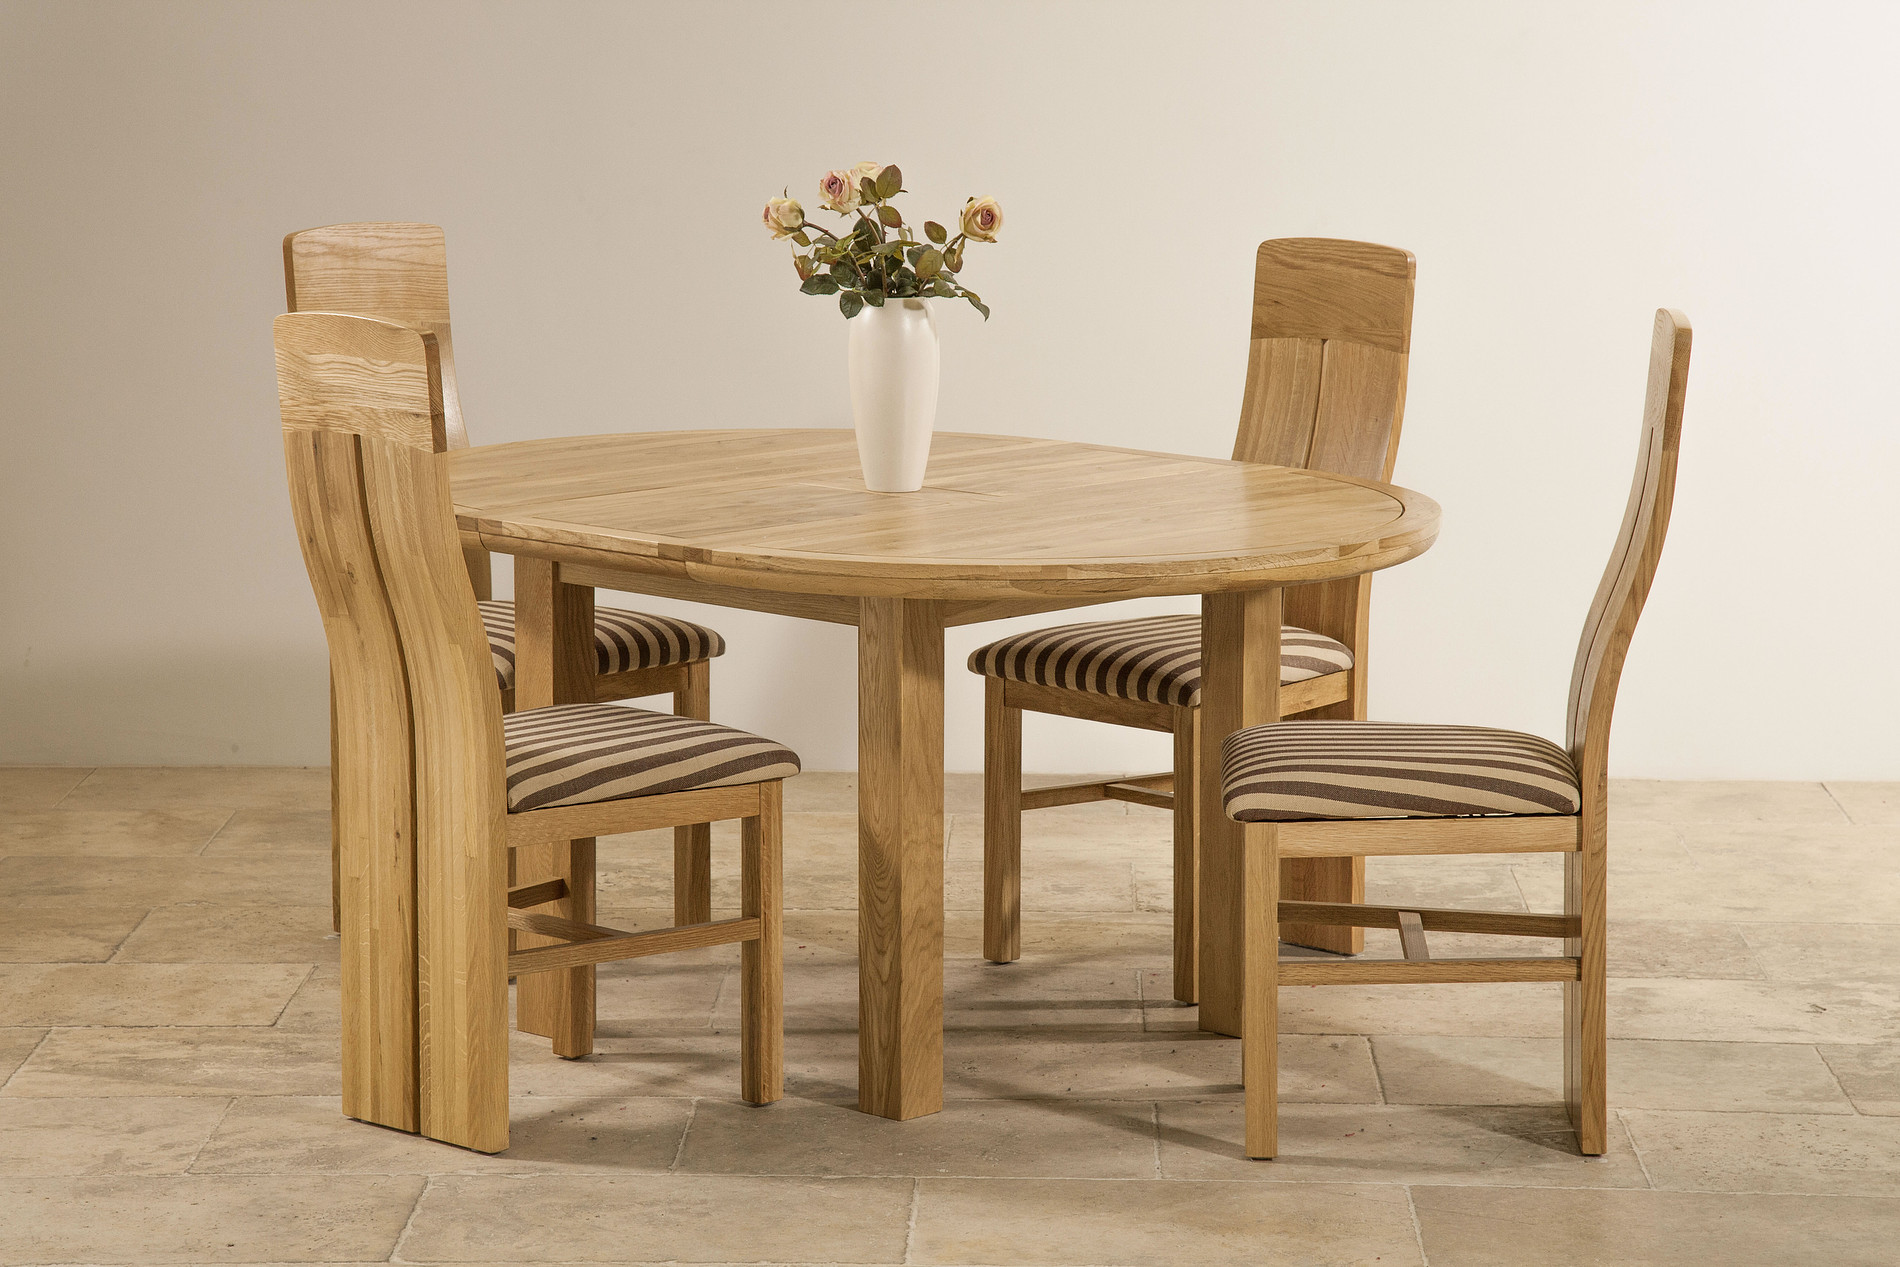 Knightsbridge 5ft 3 natural solid oak round extending - Natural oak dining table and chairs ...